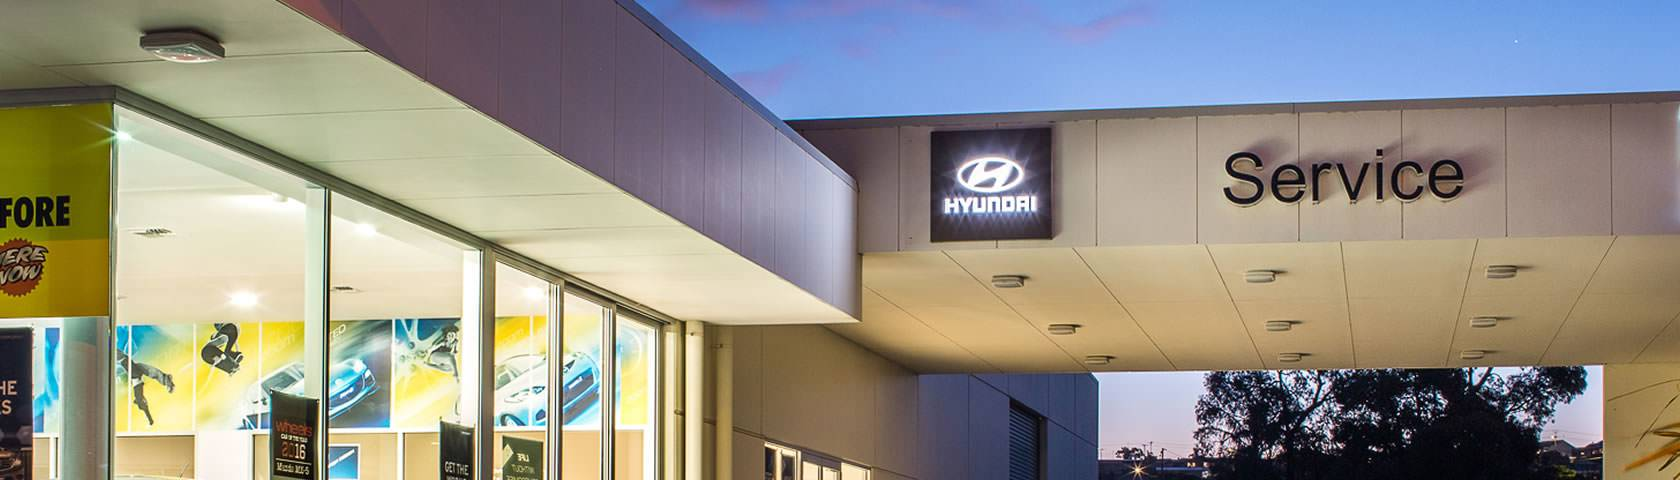 Port Lincoln Hyundai Service Centre